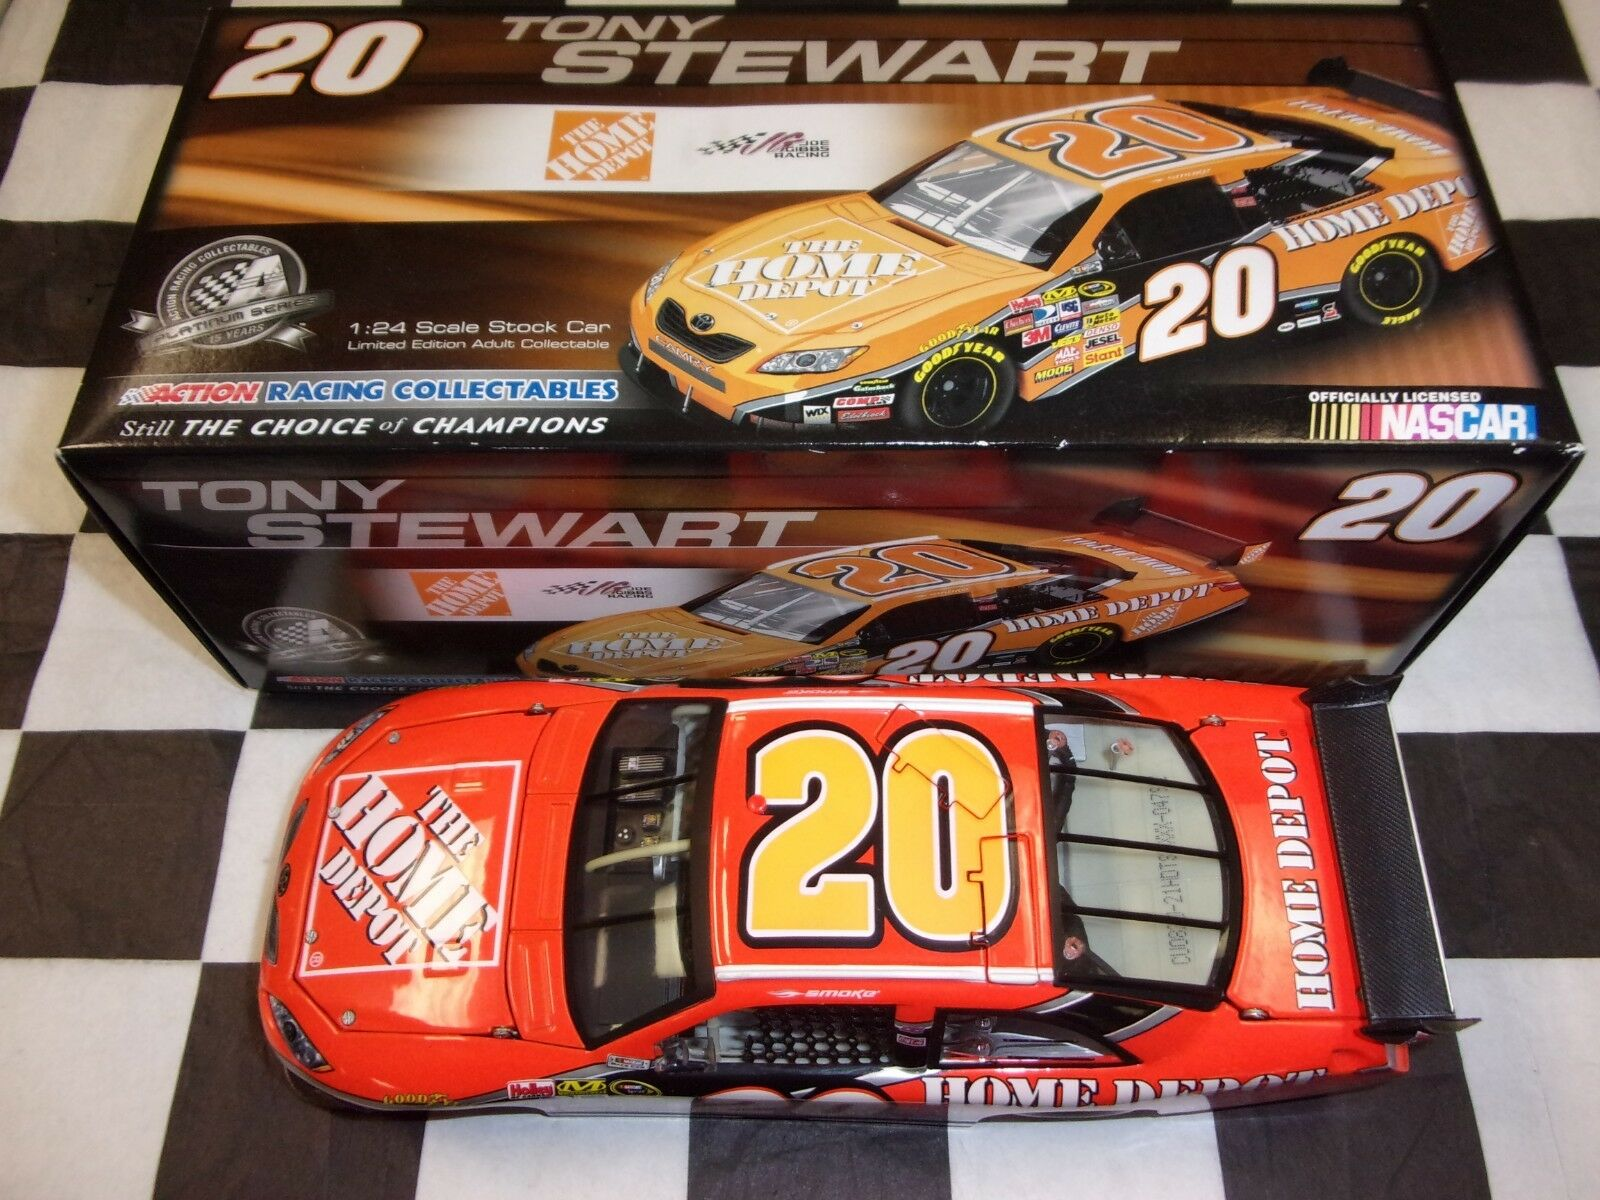 Tony Stewart  20 Home Depot 2008 Camry Action NASCAR 1 24 scale car C208821HDTS